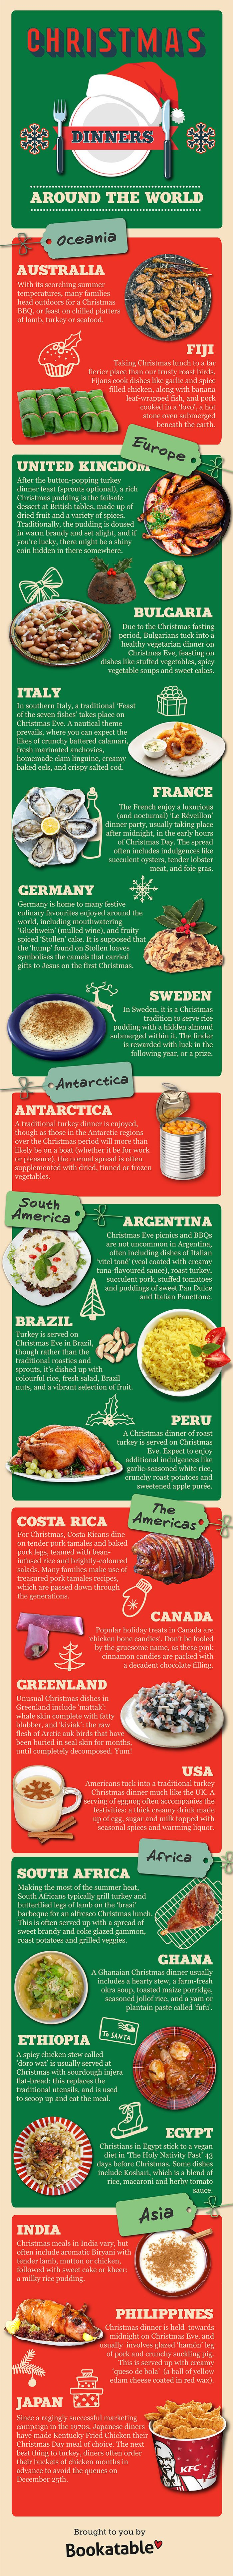 """Infographic: """"Christmas Dinners Around The World"""" 